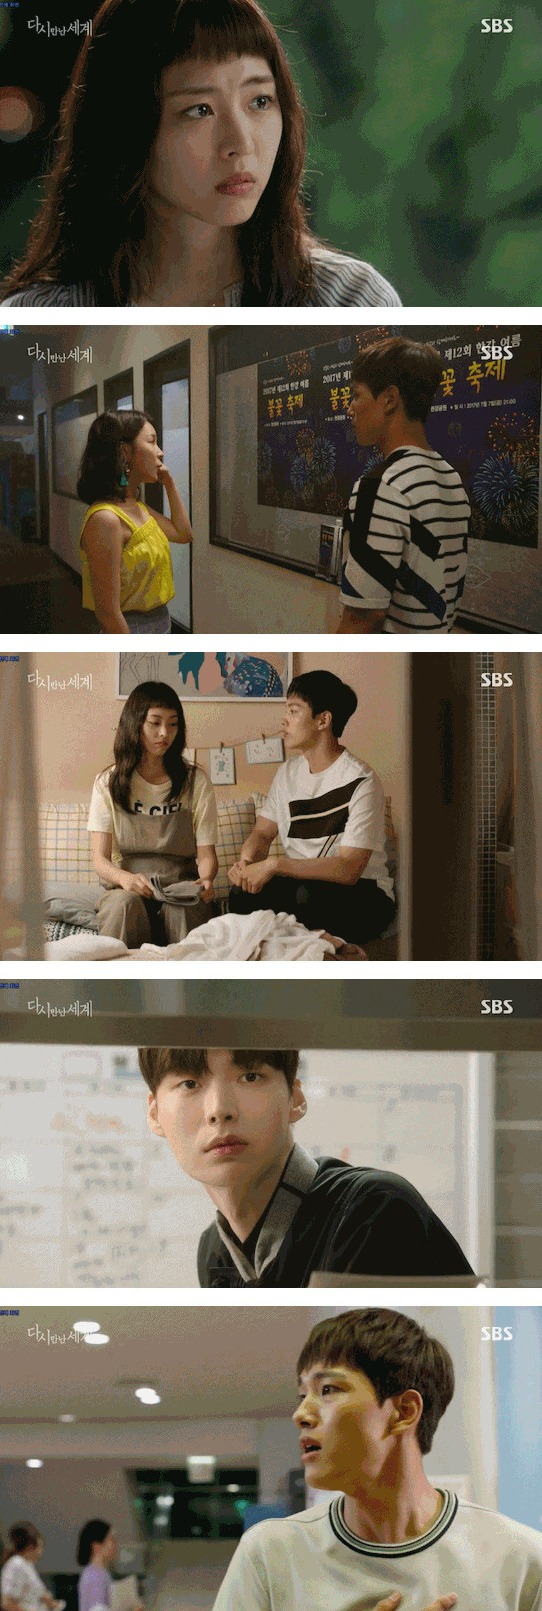 [Spoiler] Added episodes 11 and 12 captures for the Korean drama 'Reunited Worlds'